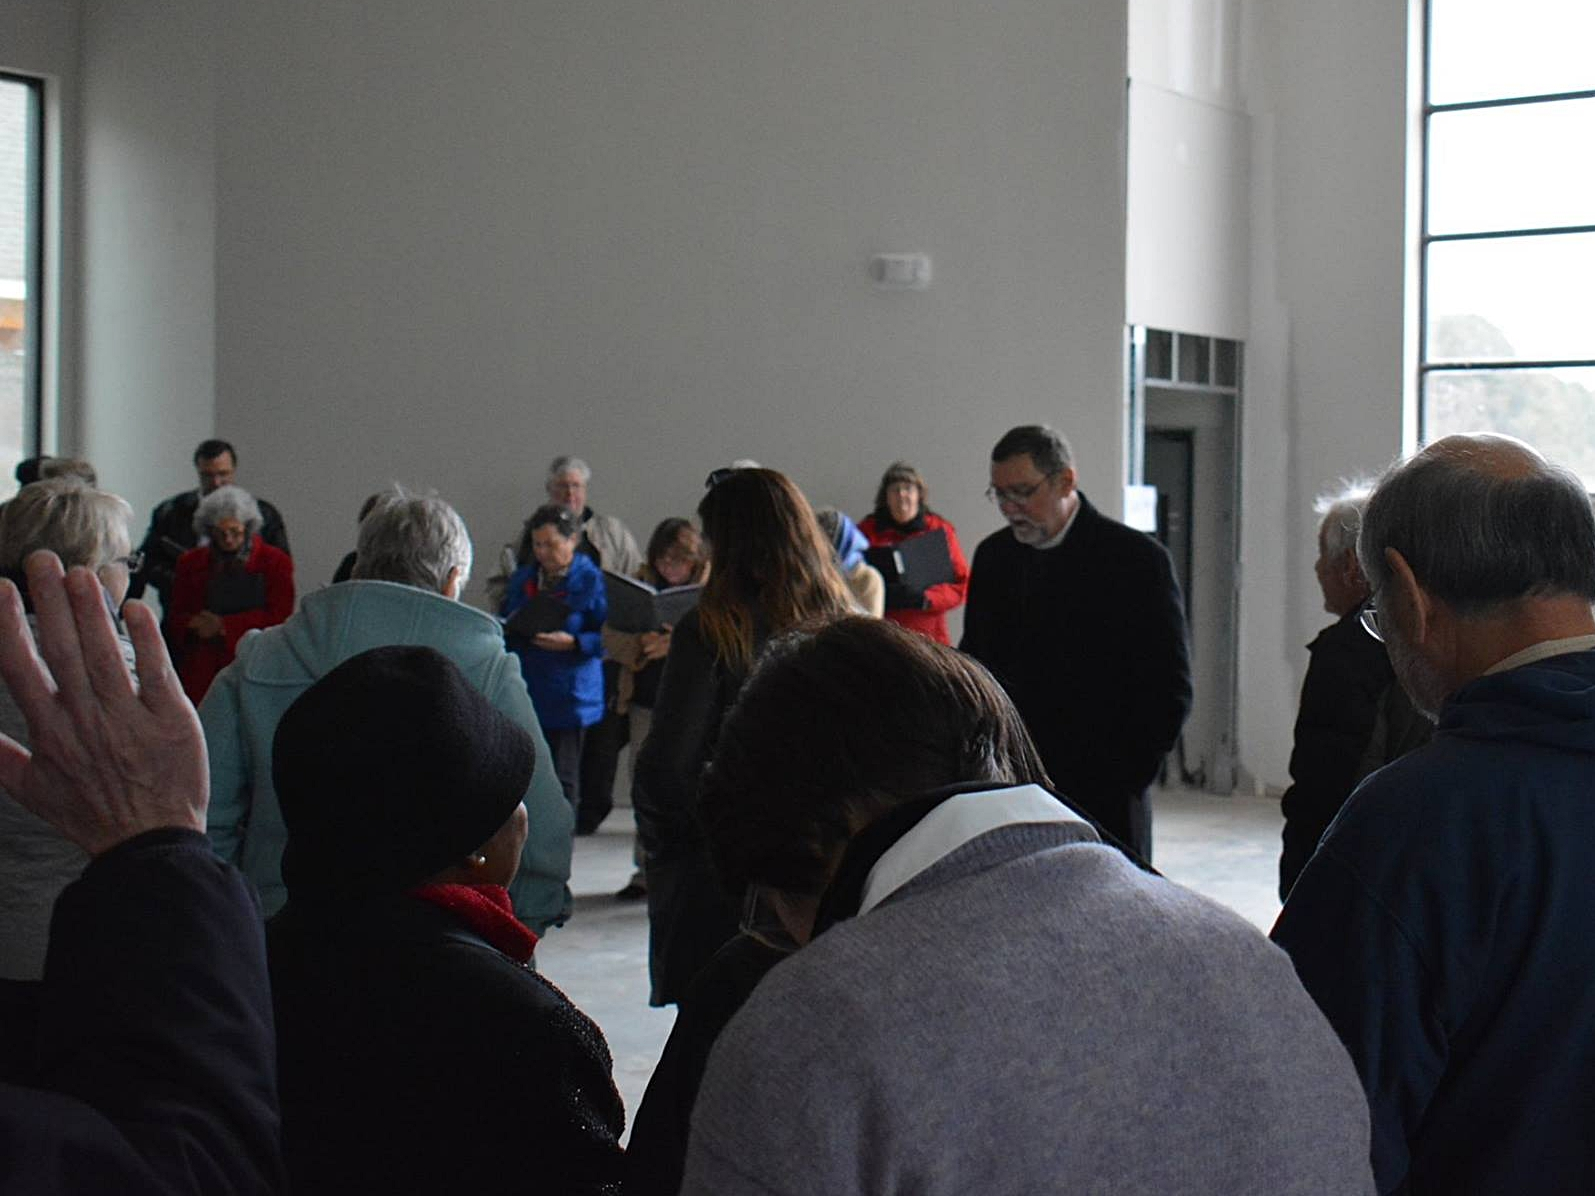 Prayer in the newly built, unfurnished Sanctuary.